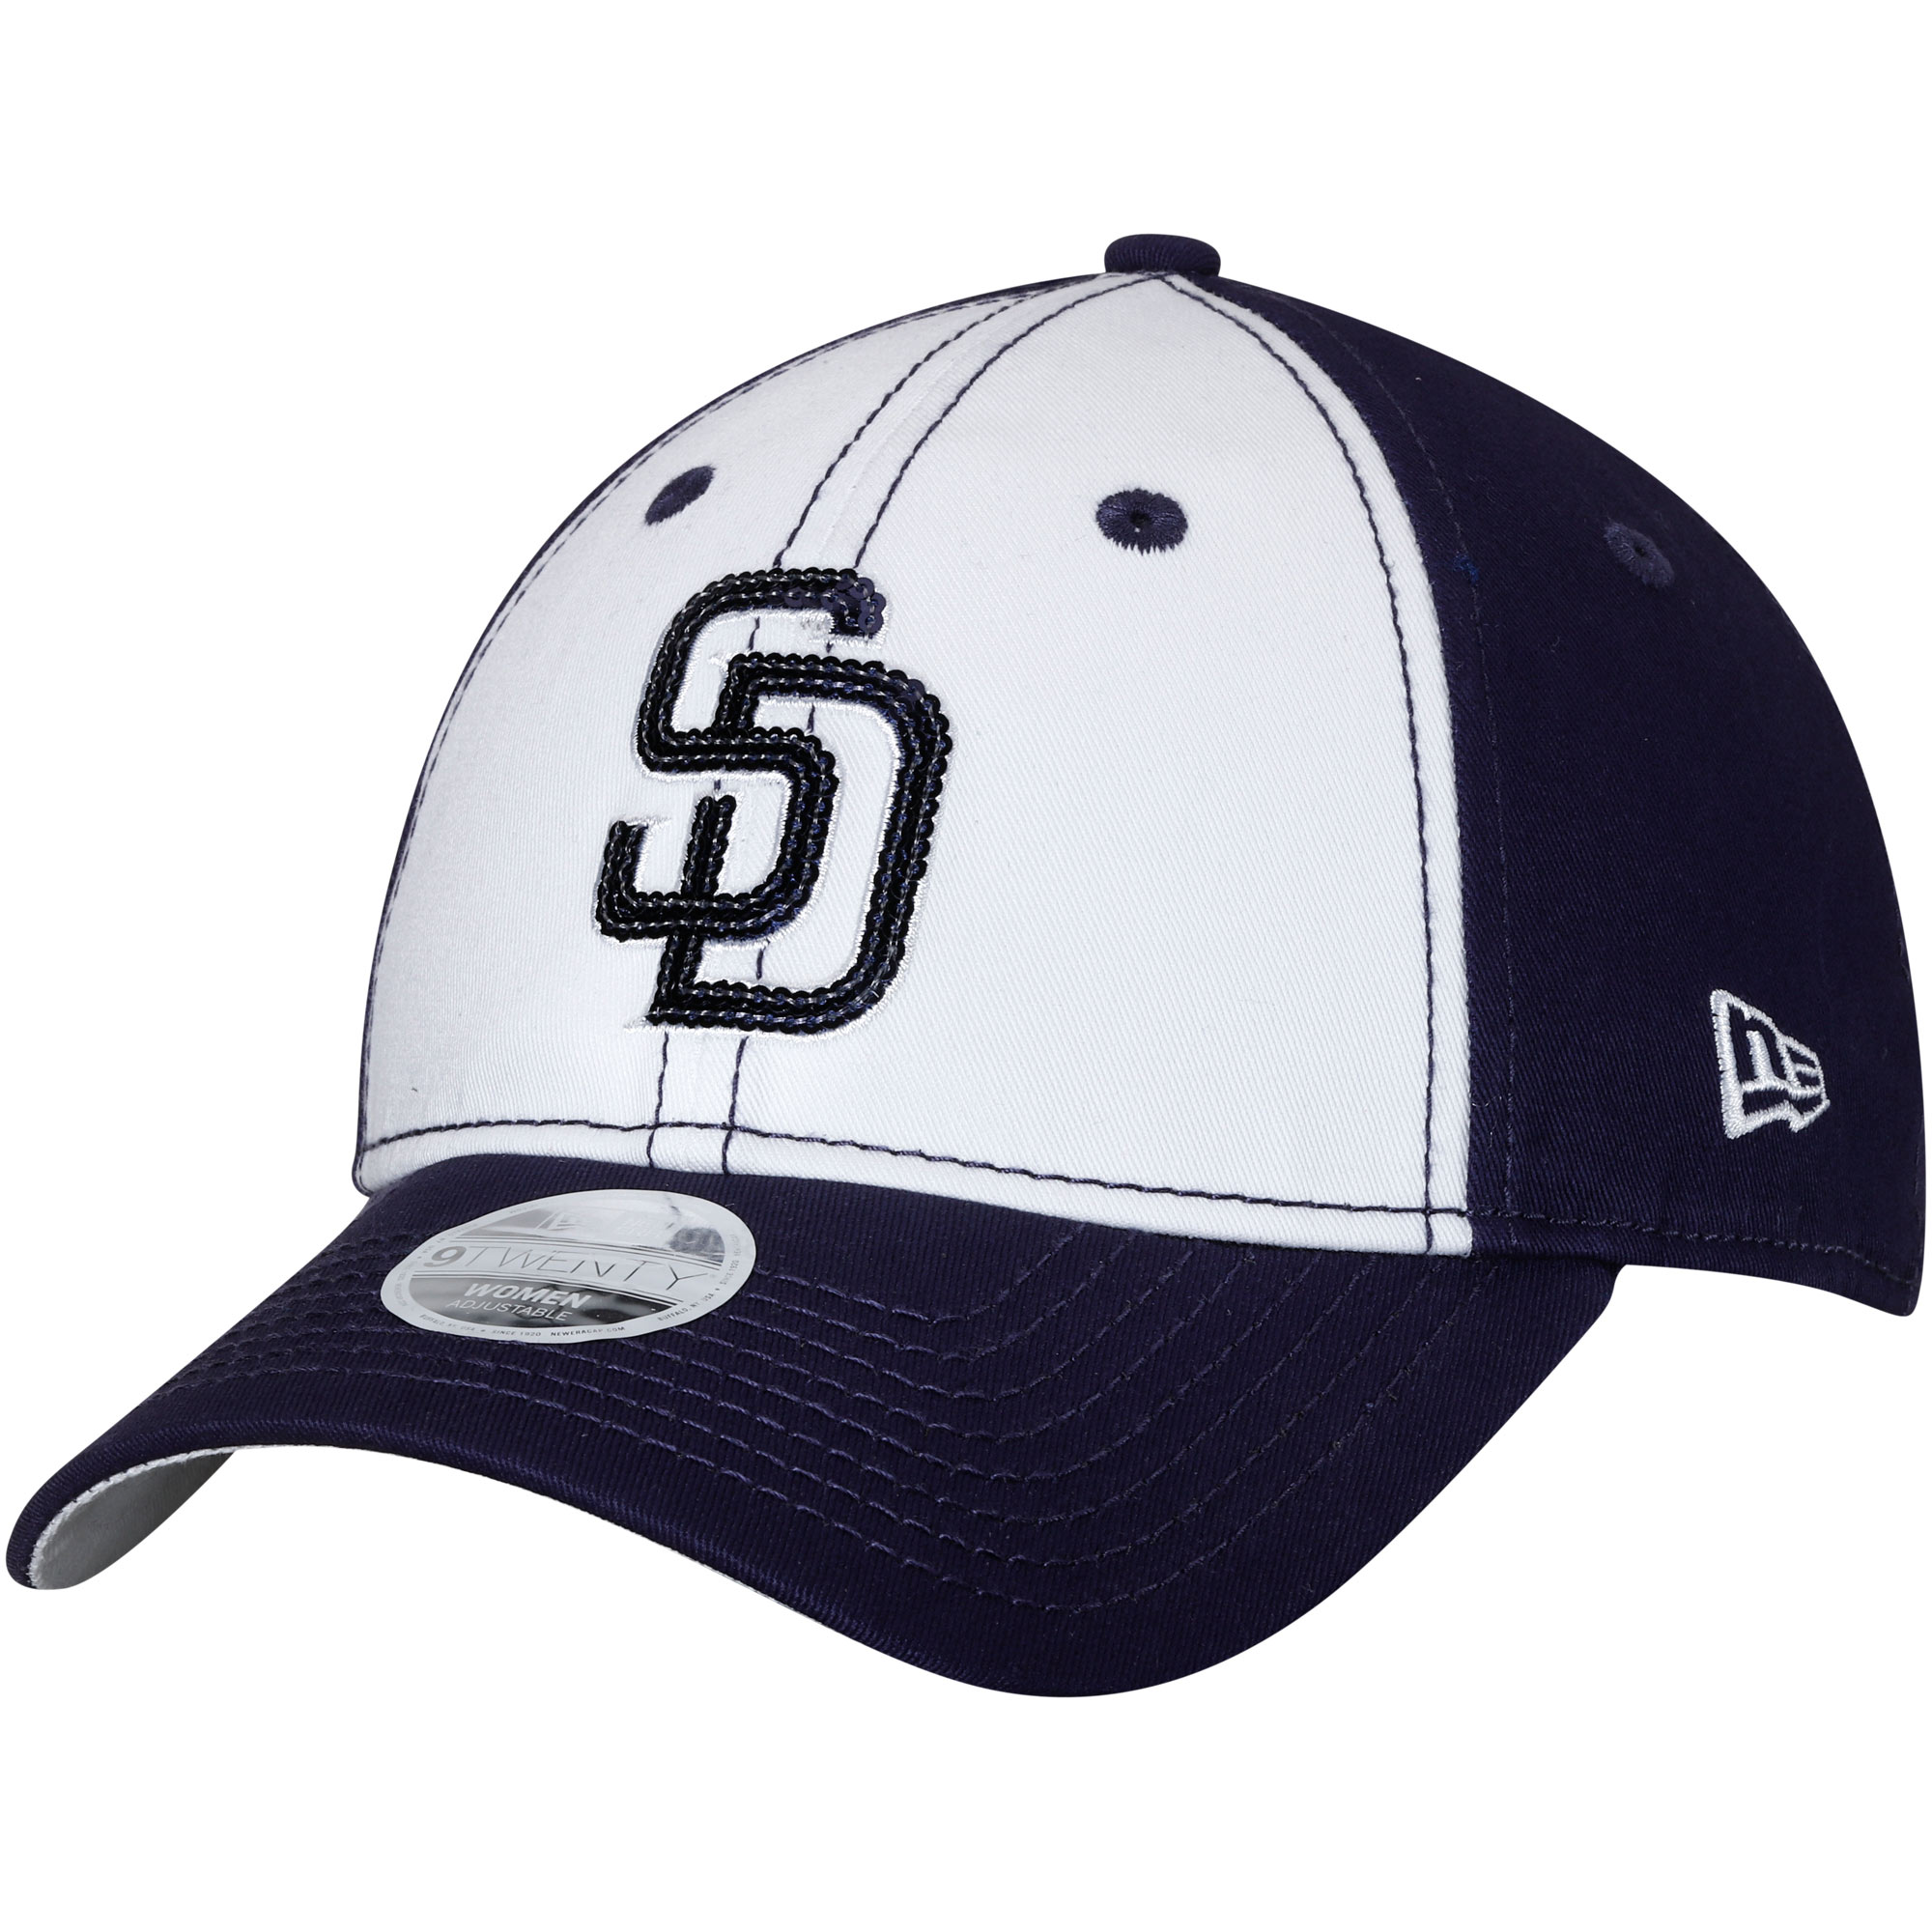 San Diego Padres New Era Women's Team Glimmer 9TWENTY Adjustable Hat - White/Navy - OSFA